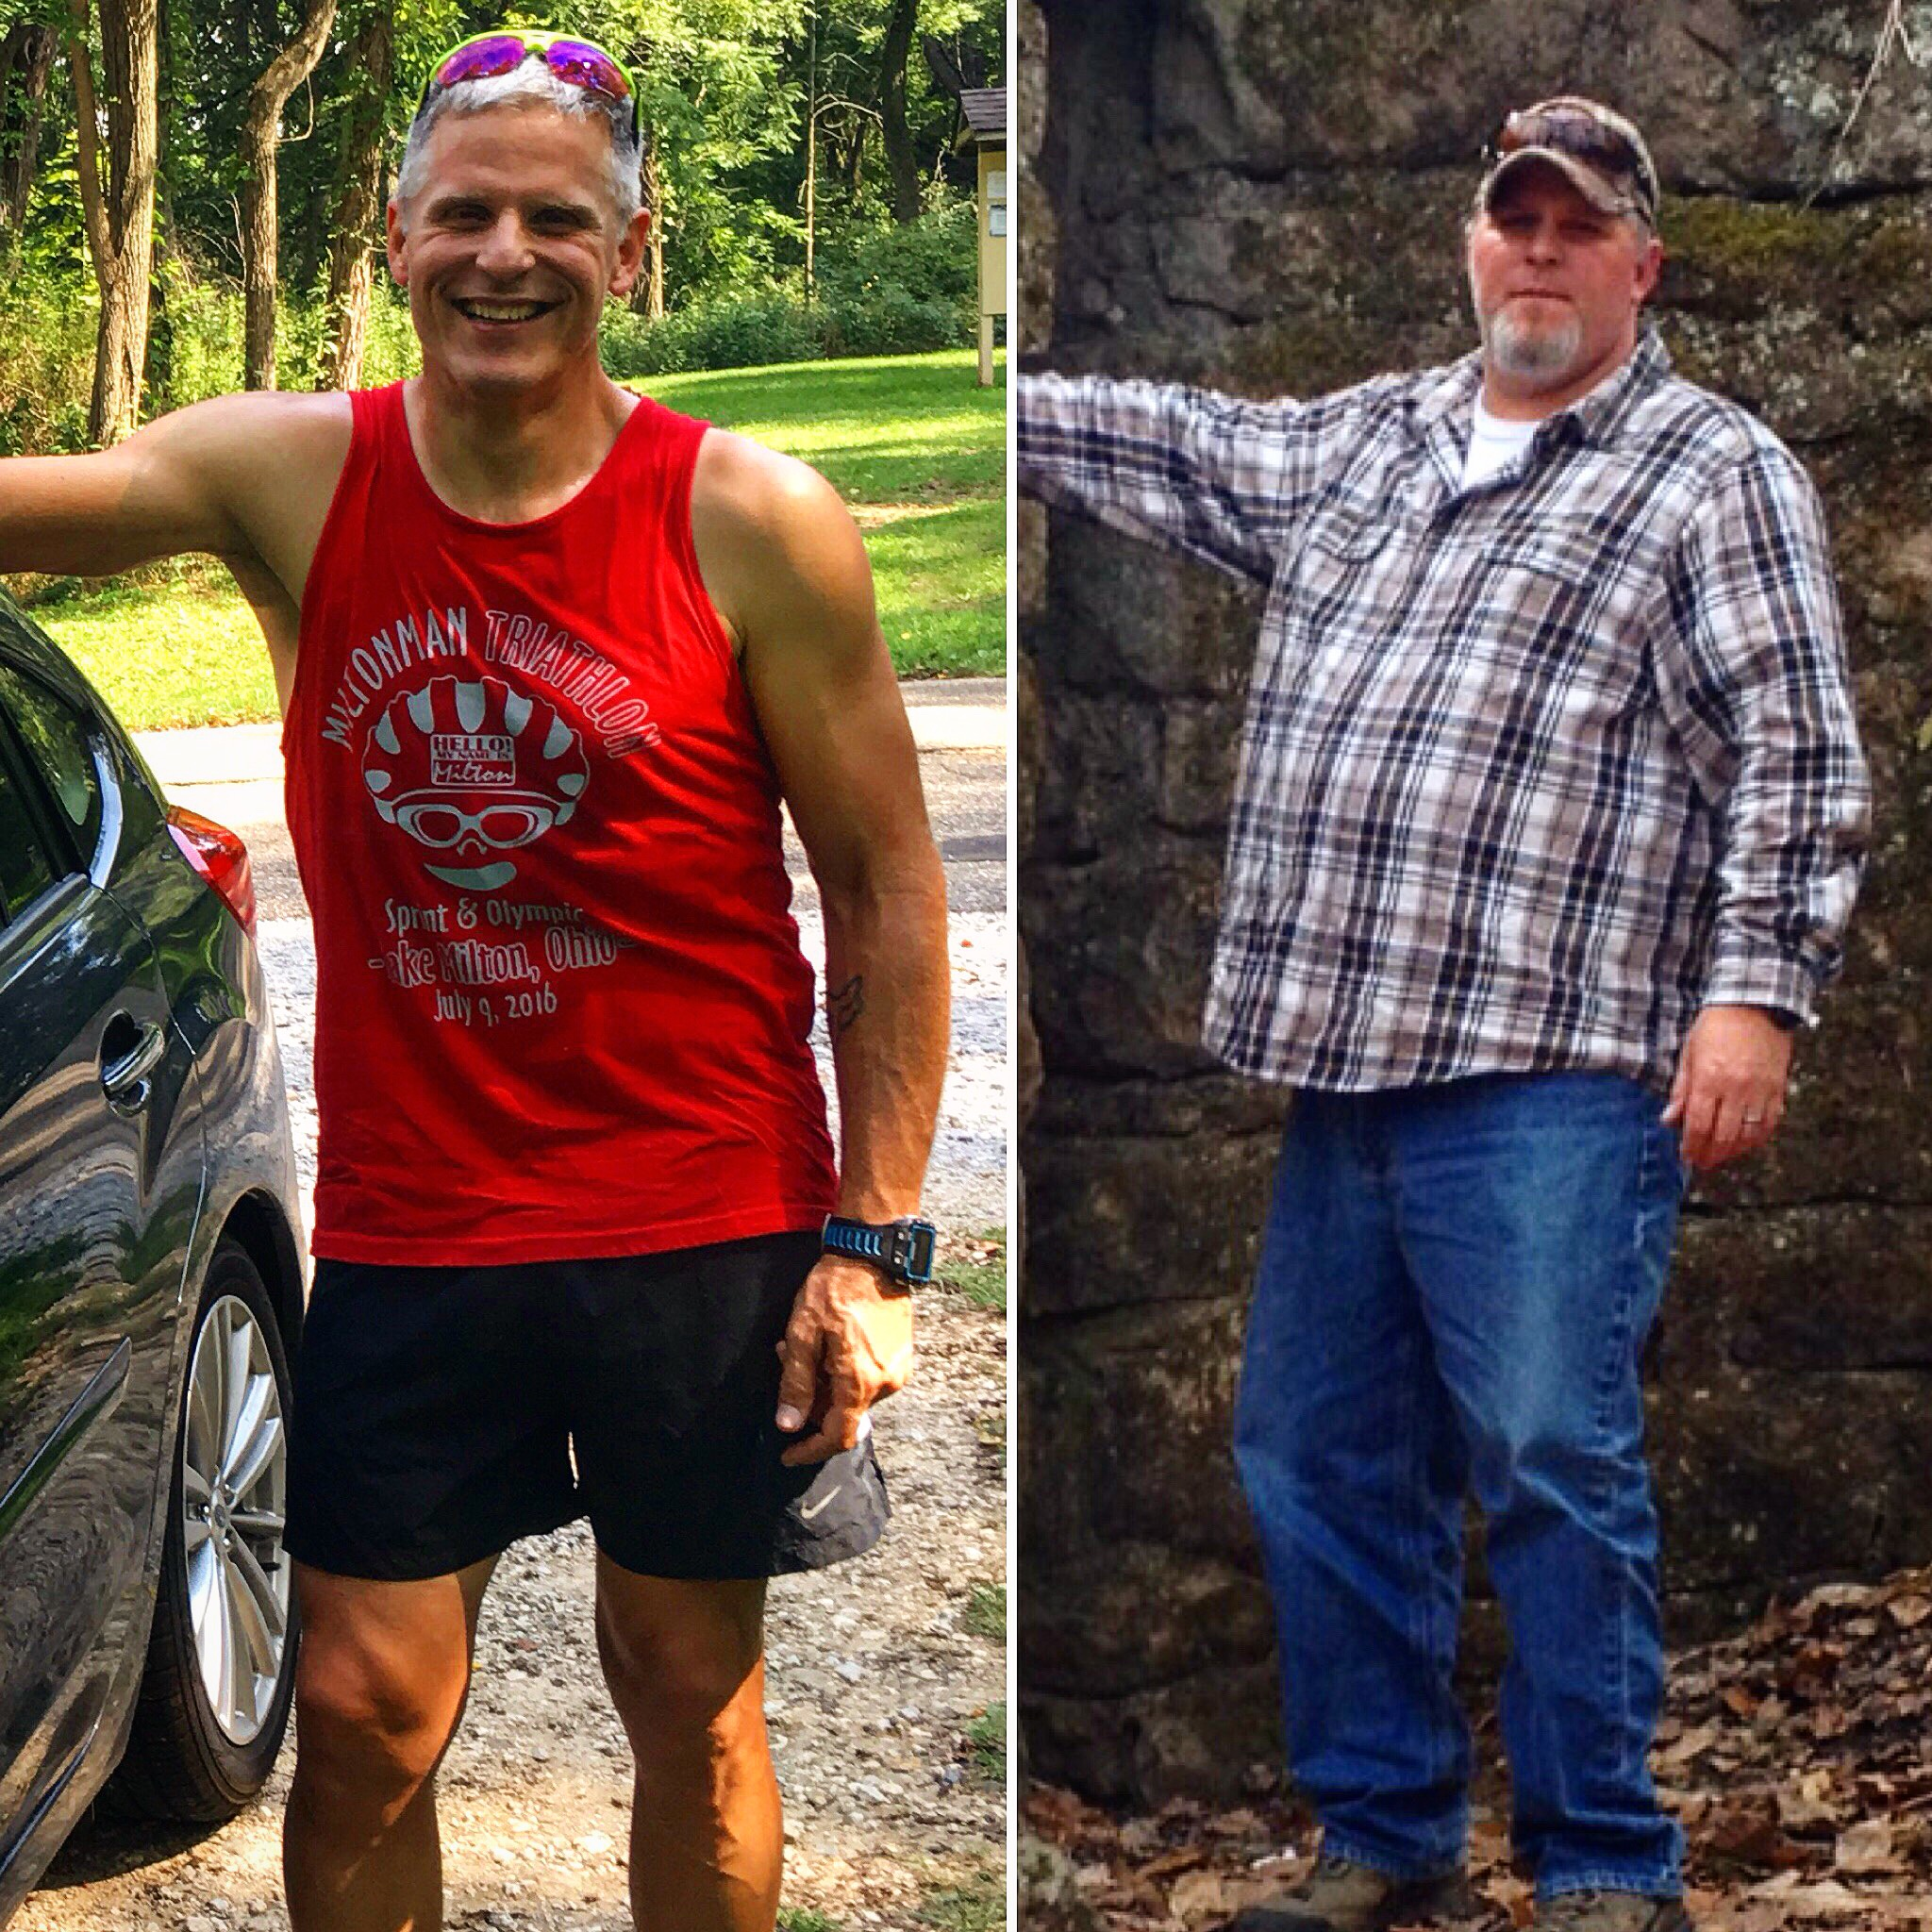 Curtis Masters - I submerged myself in the world of fitness and triathlon after a 7 year bout with illness, injury and obesity. Once weighing 307 lbs I made the decision to